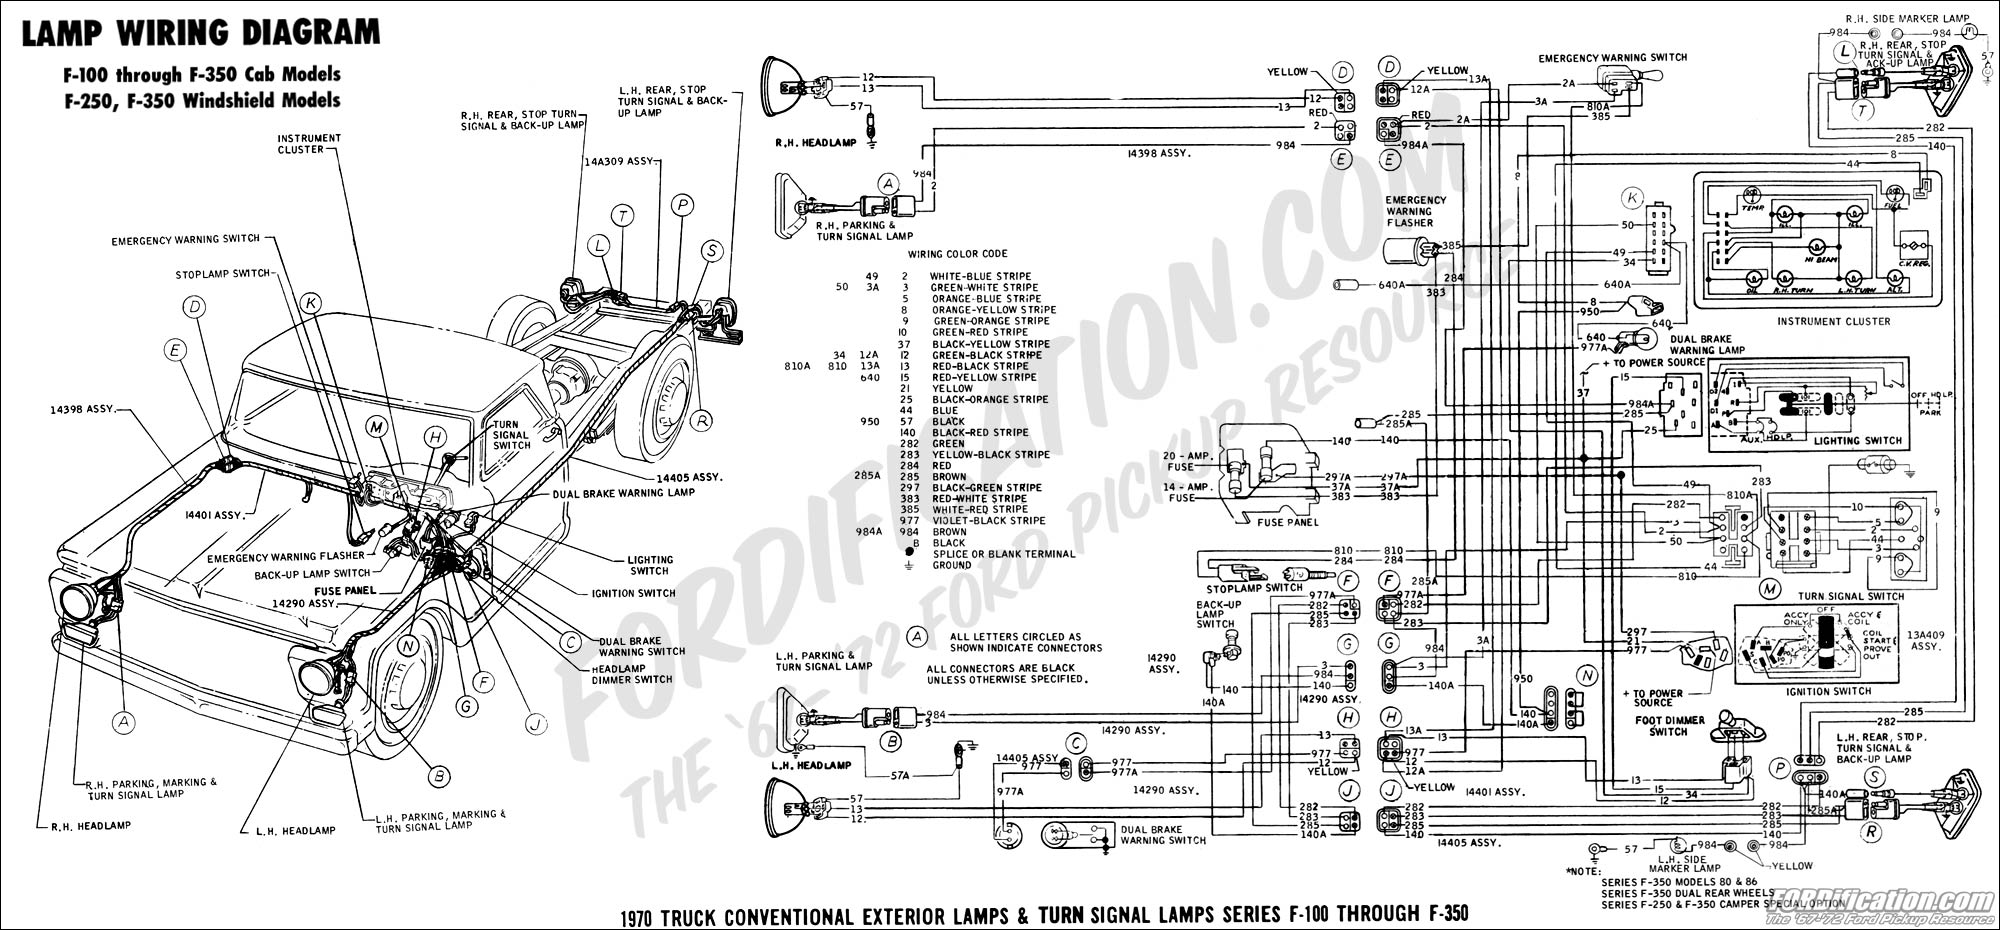 Camper Wiring Diagram 1976 1970 Body Builder S Layout Book Fordification Com